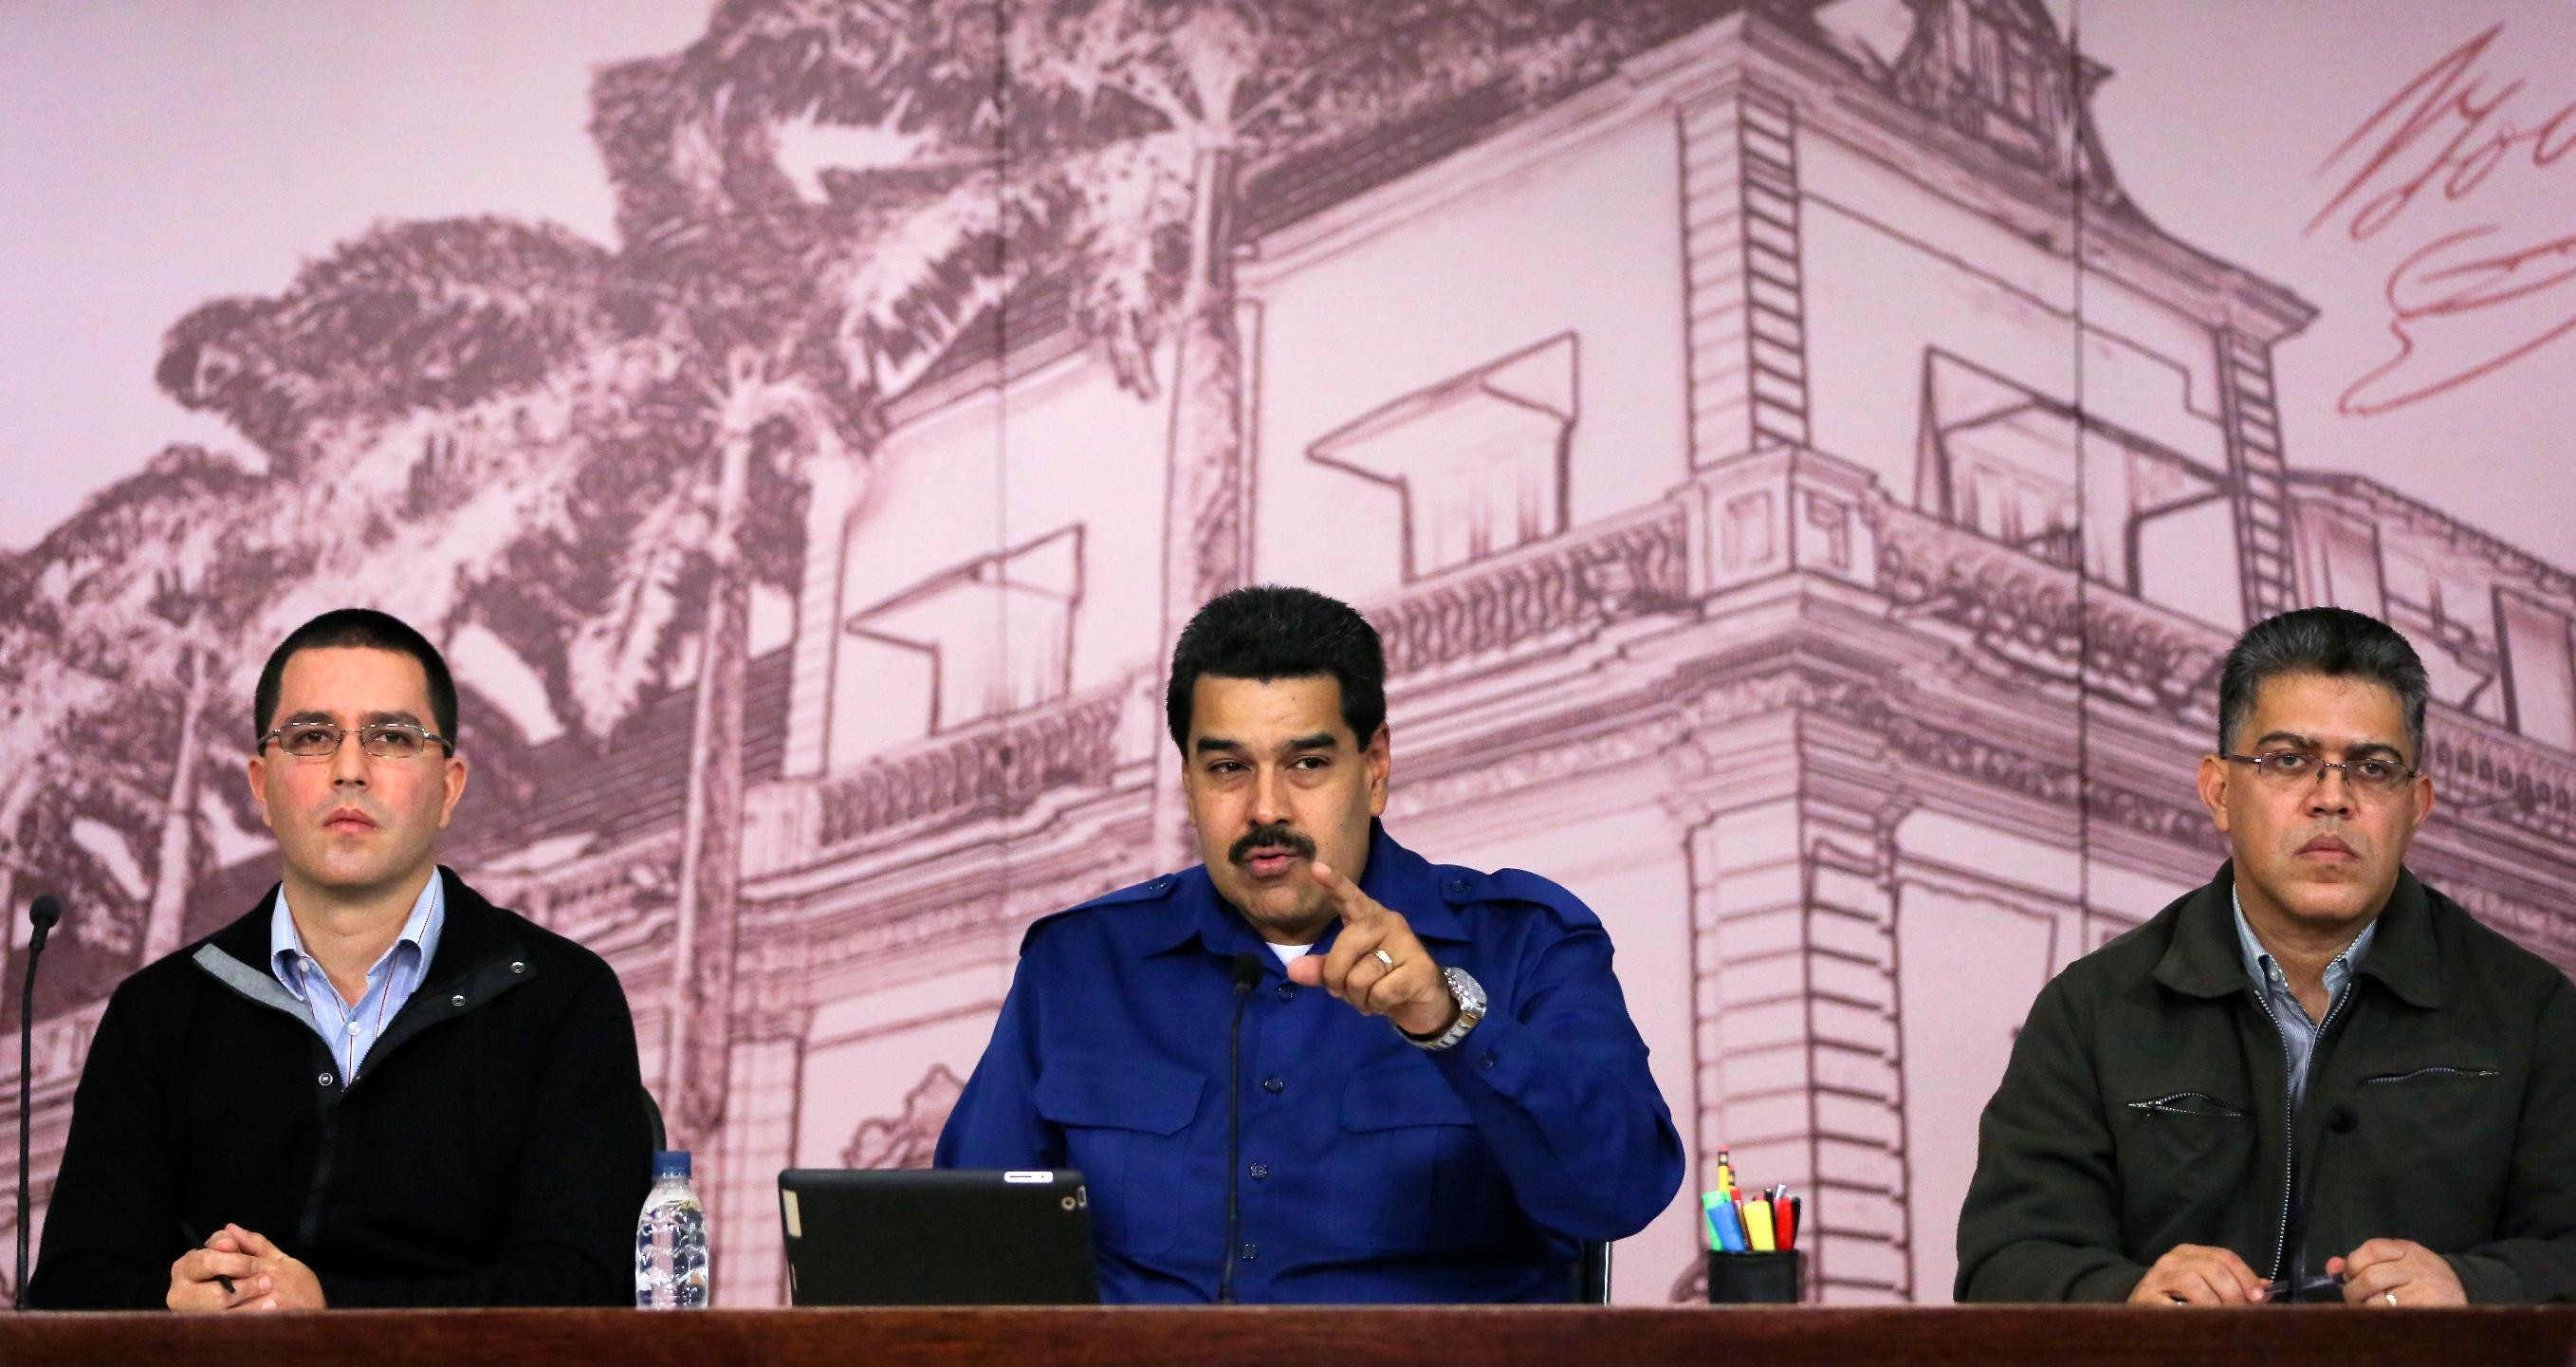 """Flanked by Venezuela's Vice President Jorge Arreaza, left, and Foreign Minister Elia Jaua, President Nicolas Maduro speaks at a news conference at Miraflores presidential palace in Caracas, Venezuela, Monday, Dec. 30, 2013. Maduro said Monday that annual inflation hit 56.2 percent. Earlier the Central Bank said inflation slowed in the last two months of the year after Maduro took action to slash prices of appliances. The Central Bank justified a nearly three-week delay in issuing its report because of """"exceptional and historic"""" measures taken by Maduro to fight price speculators trying to destabilize the country. (AP Photo/Fernando Llano)"""